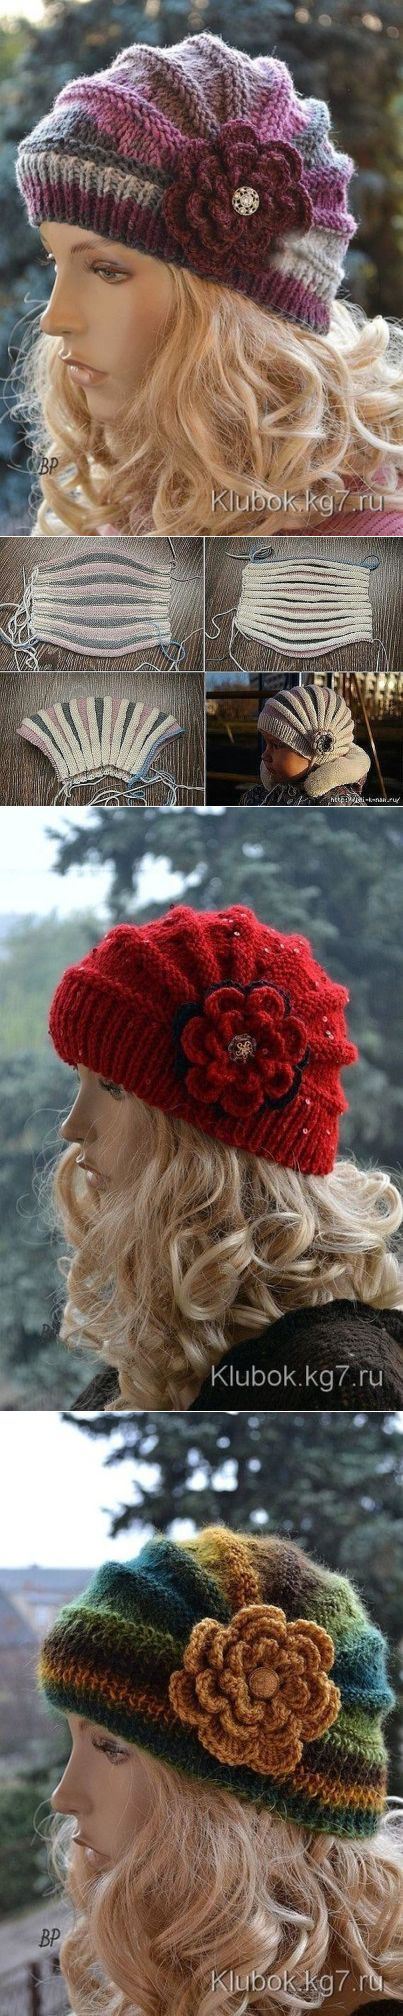 Slightly unordinary ribbed knit hat that might be fairly easy to mimic with certain crochet stitches....